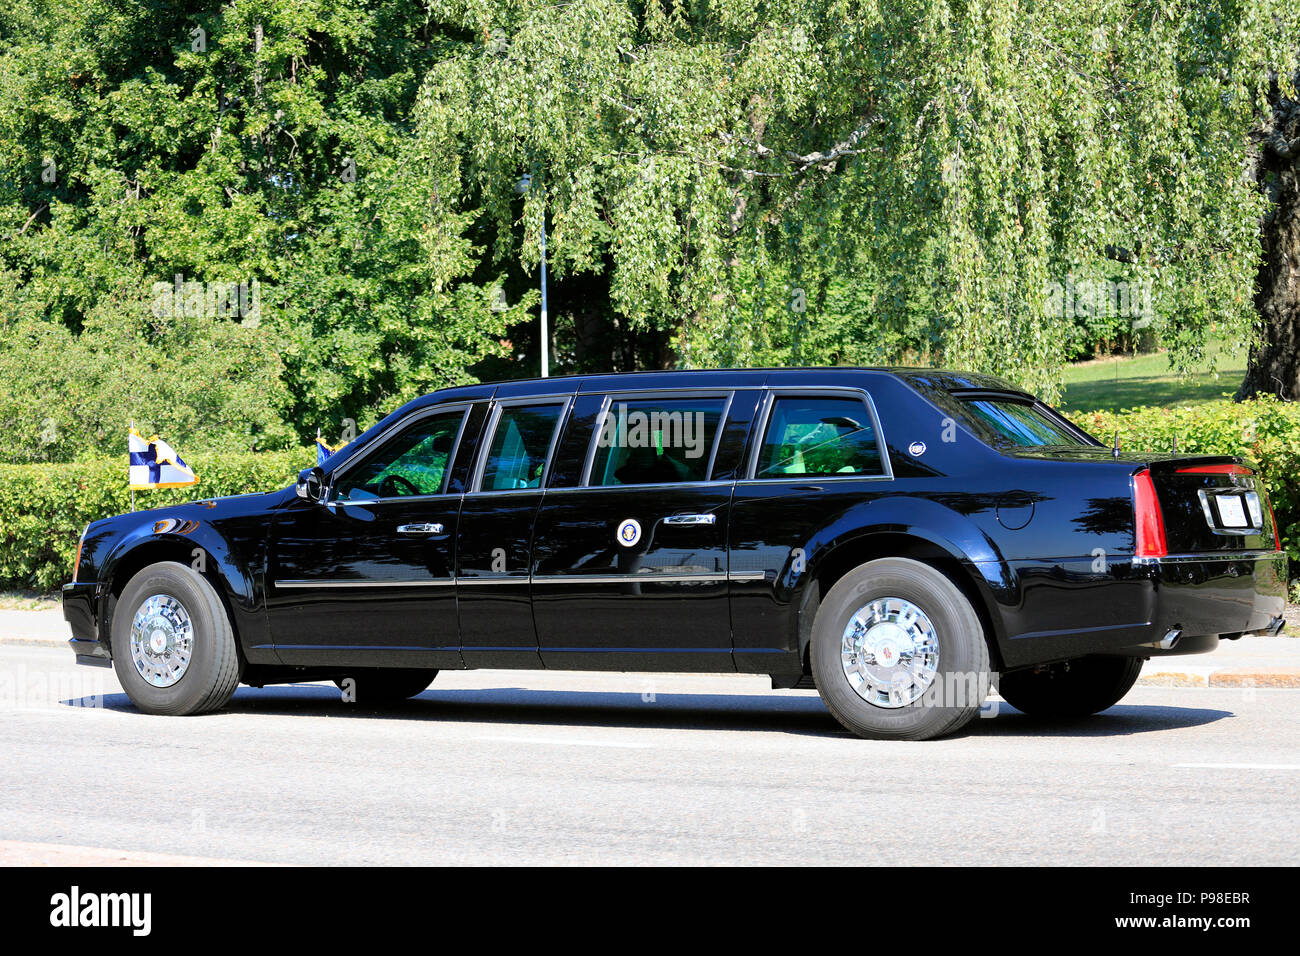 Helsinki, Finland. July 16, 2018. The motorcade of US President Donald Trump and First Lady Melania Trump passes along Ramsaynranta ahead of US and Russian Presidents' historic meeting. First Lady Melania Trump waves to the crowd. Credit: Taina Sohlman/Alamy Live News Stock Photo